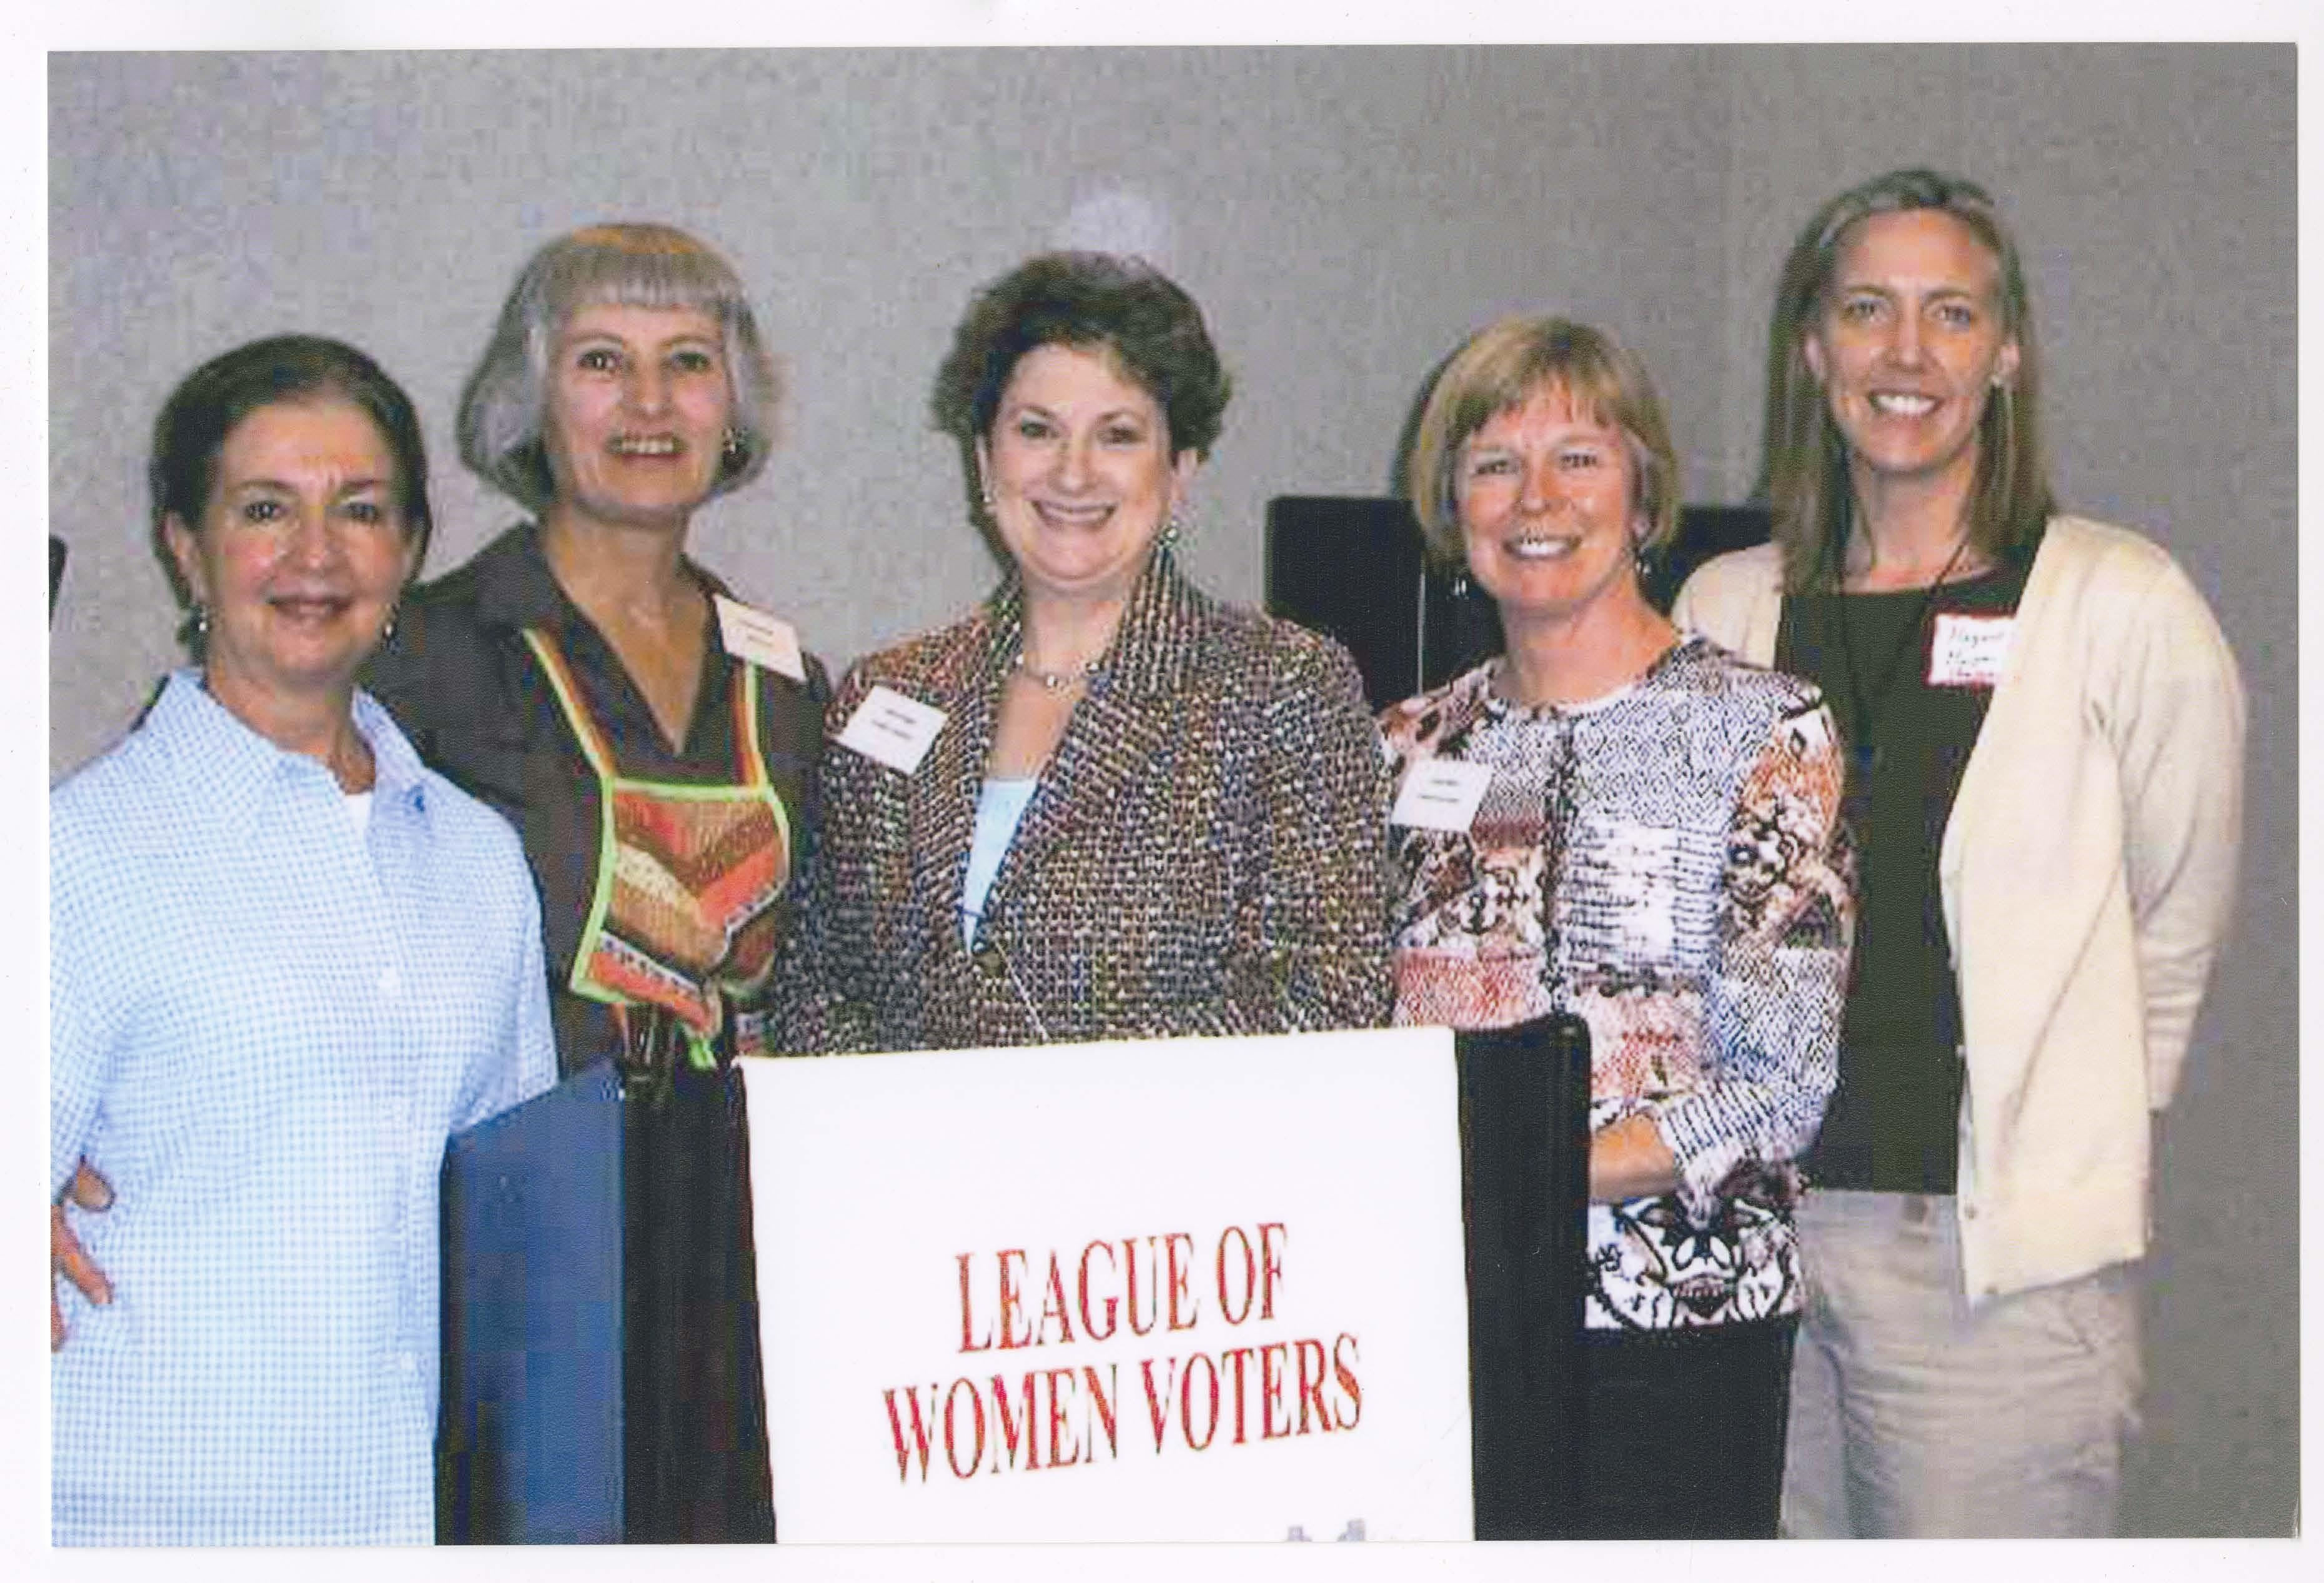 Four presidents: Barbara Zia, Sheila Haney, Laurel Suggs and Susan Richards with board member Margaret Murphy